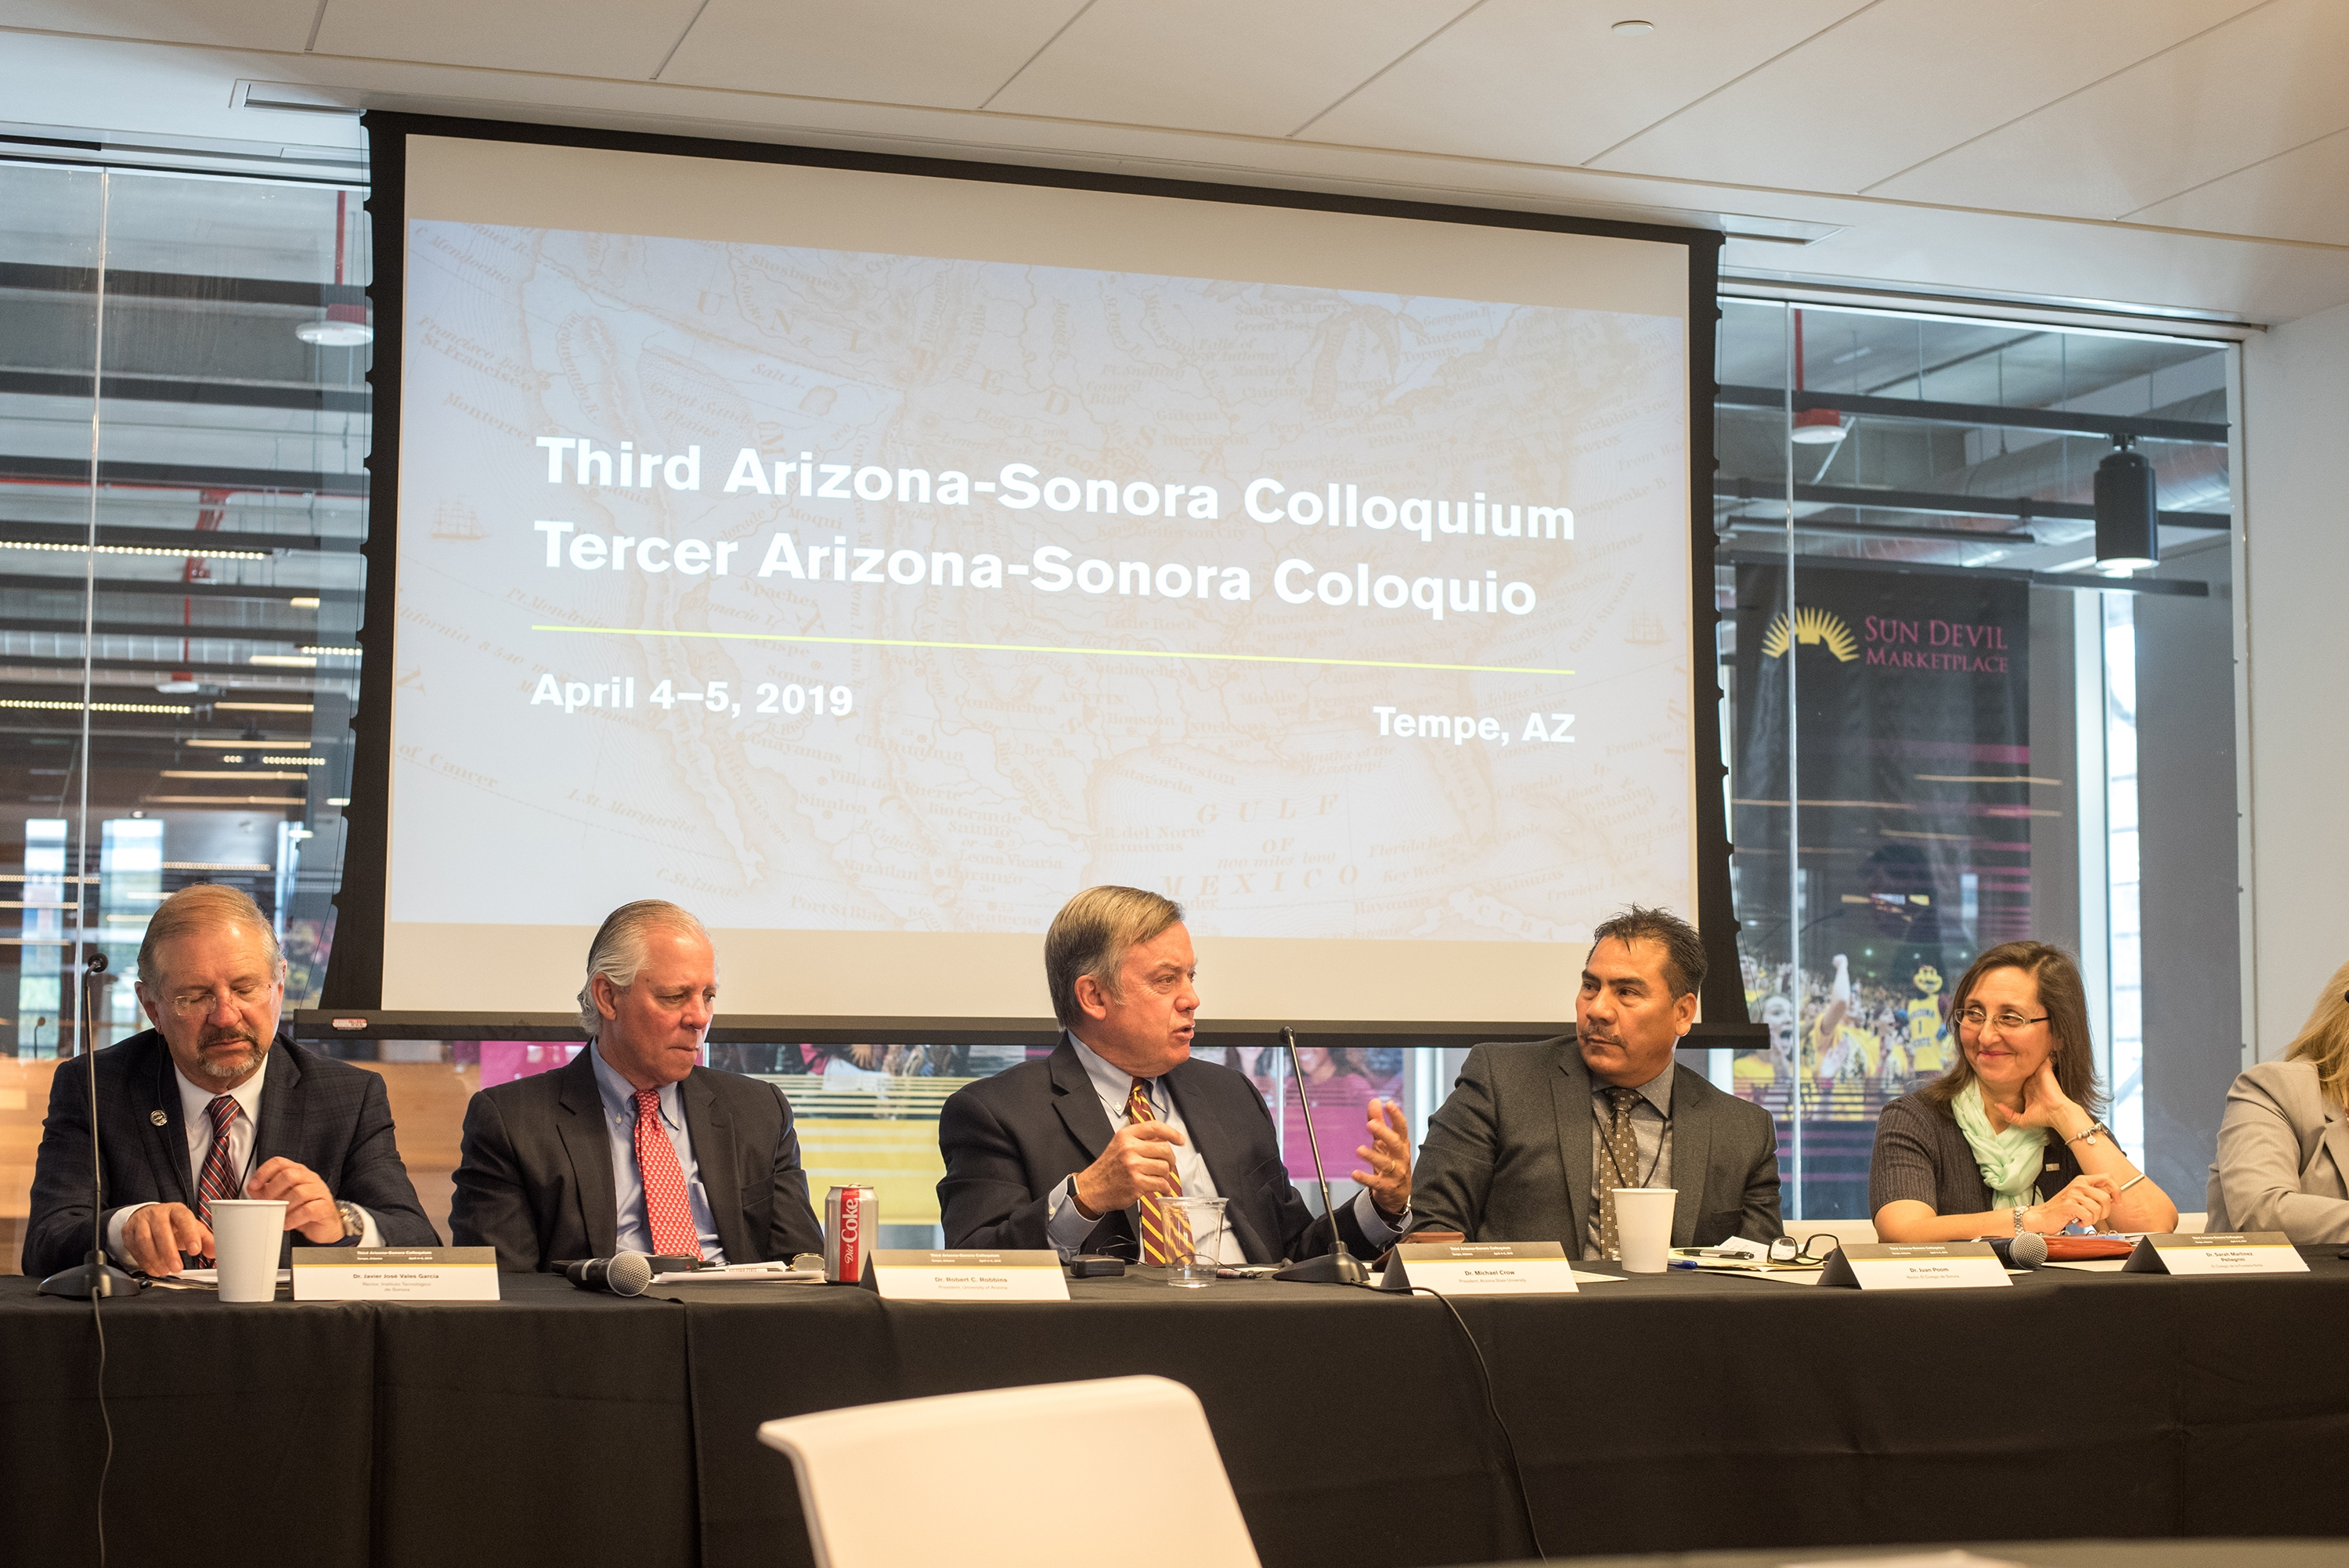 ASU President Michael Crow speaks about research collaboration and knowledge exchange between Arizona and Sonoran institutions during the third Arizona-Sonora Colloquium this month.